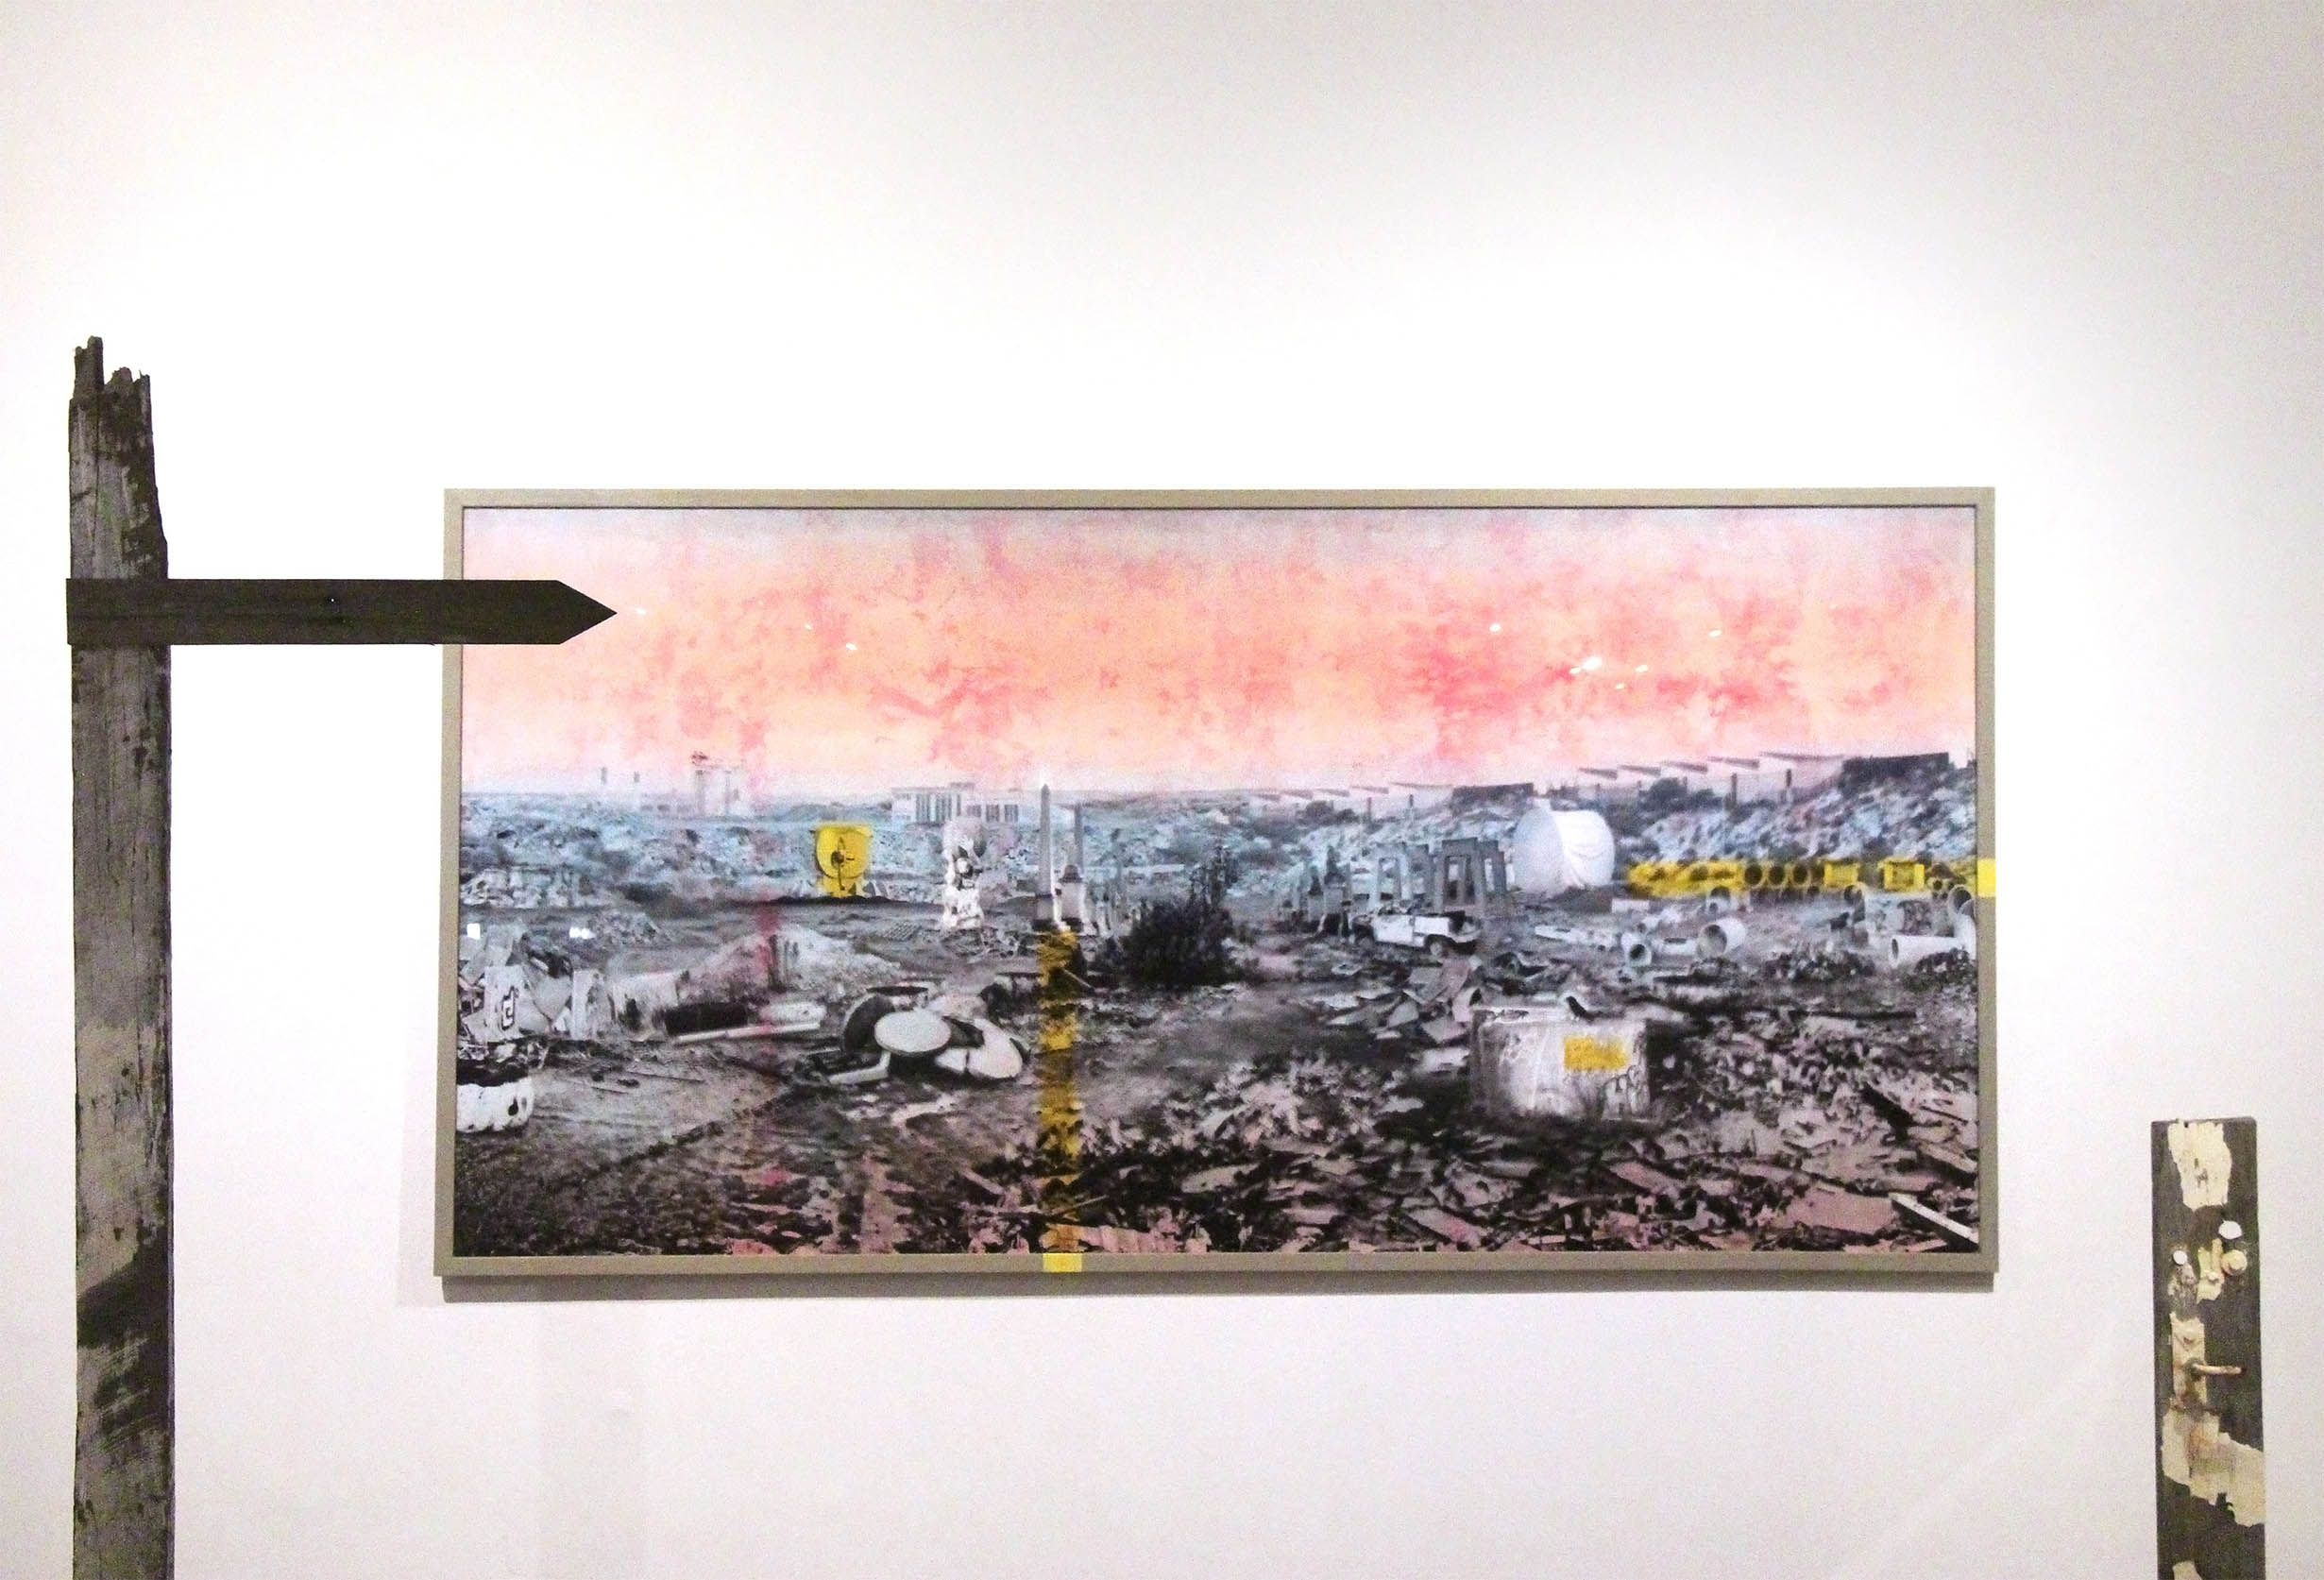 Flotsam of Capital, 2016, flatbed print on Optic plastic, ice-dyed calico, acrylic paint, wood, 246x123cm